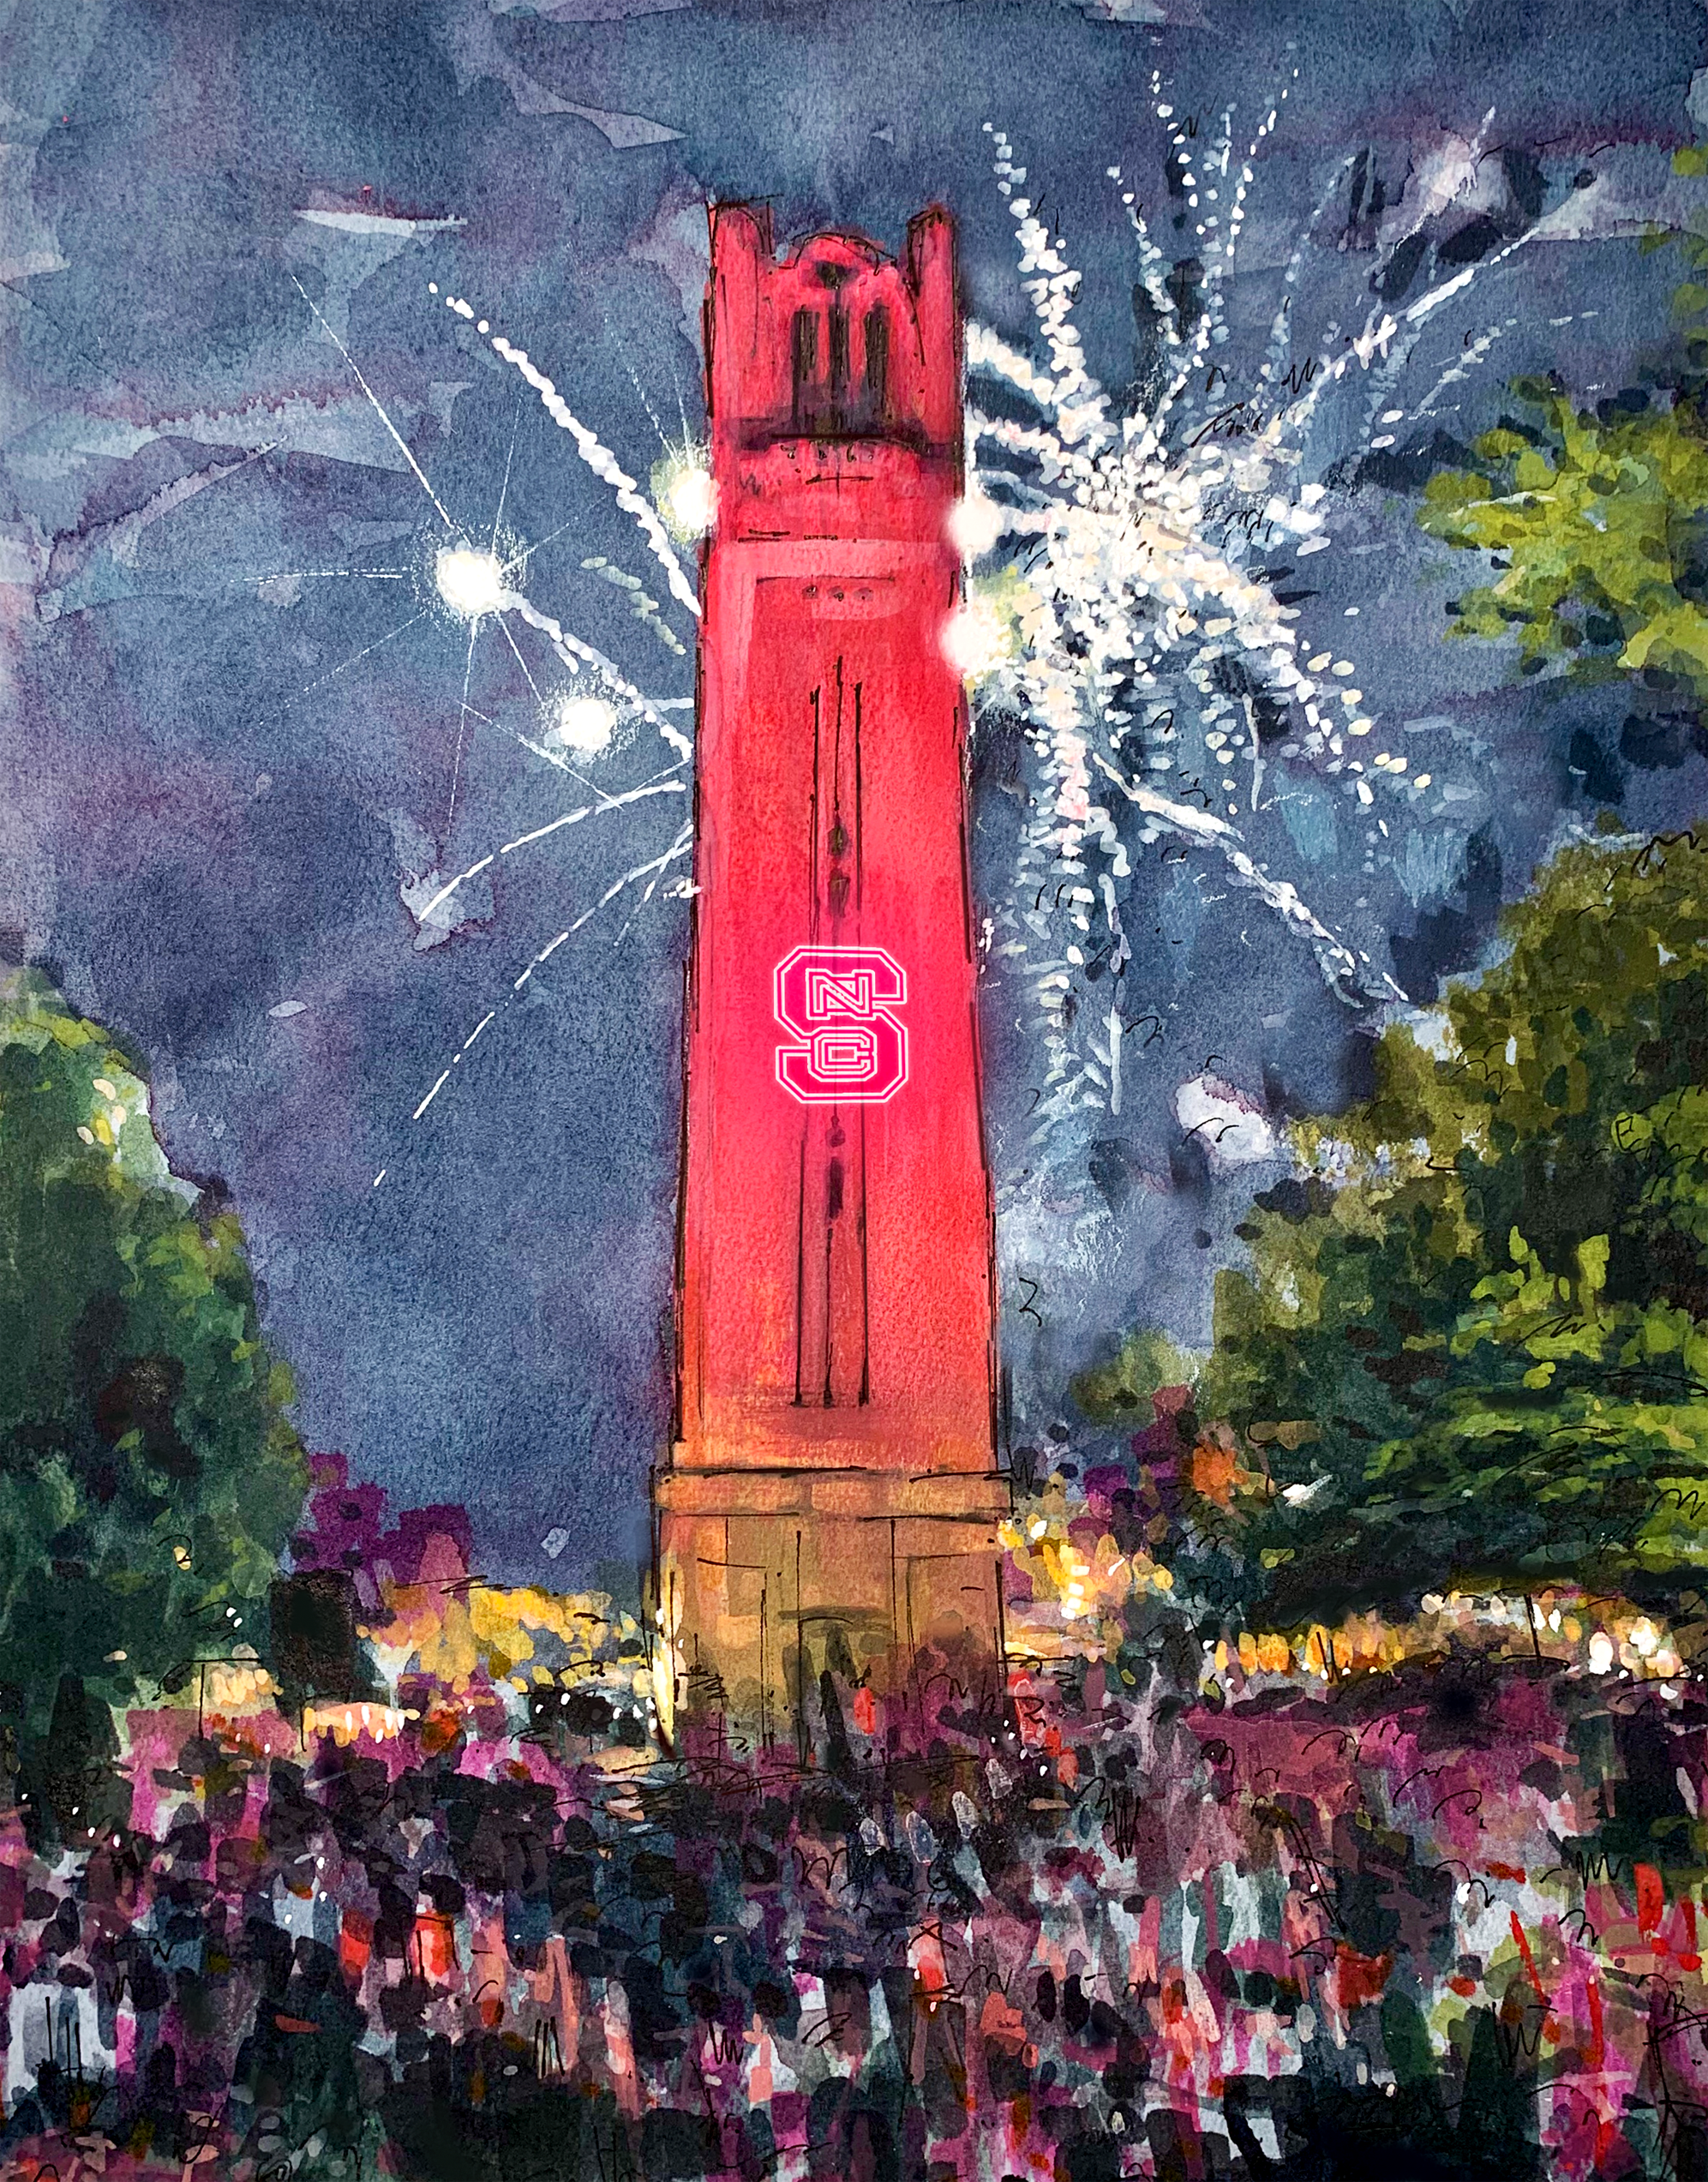 NC State - Bell Tower Lit